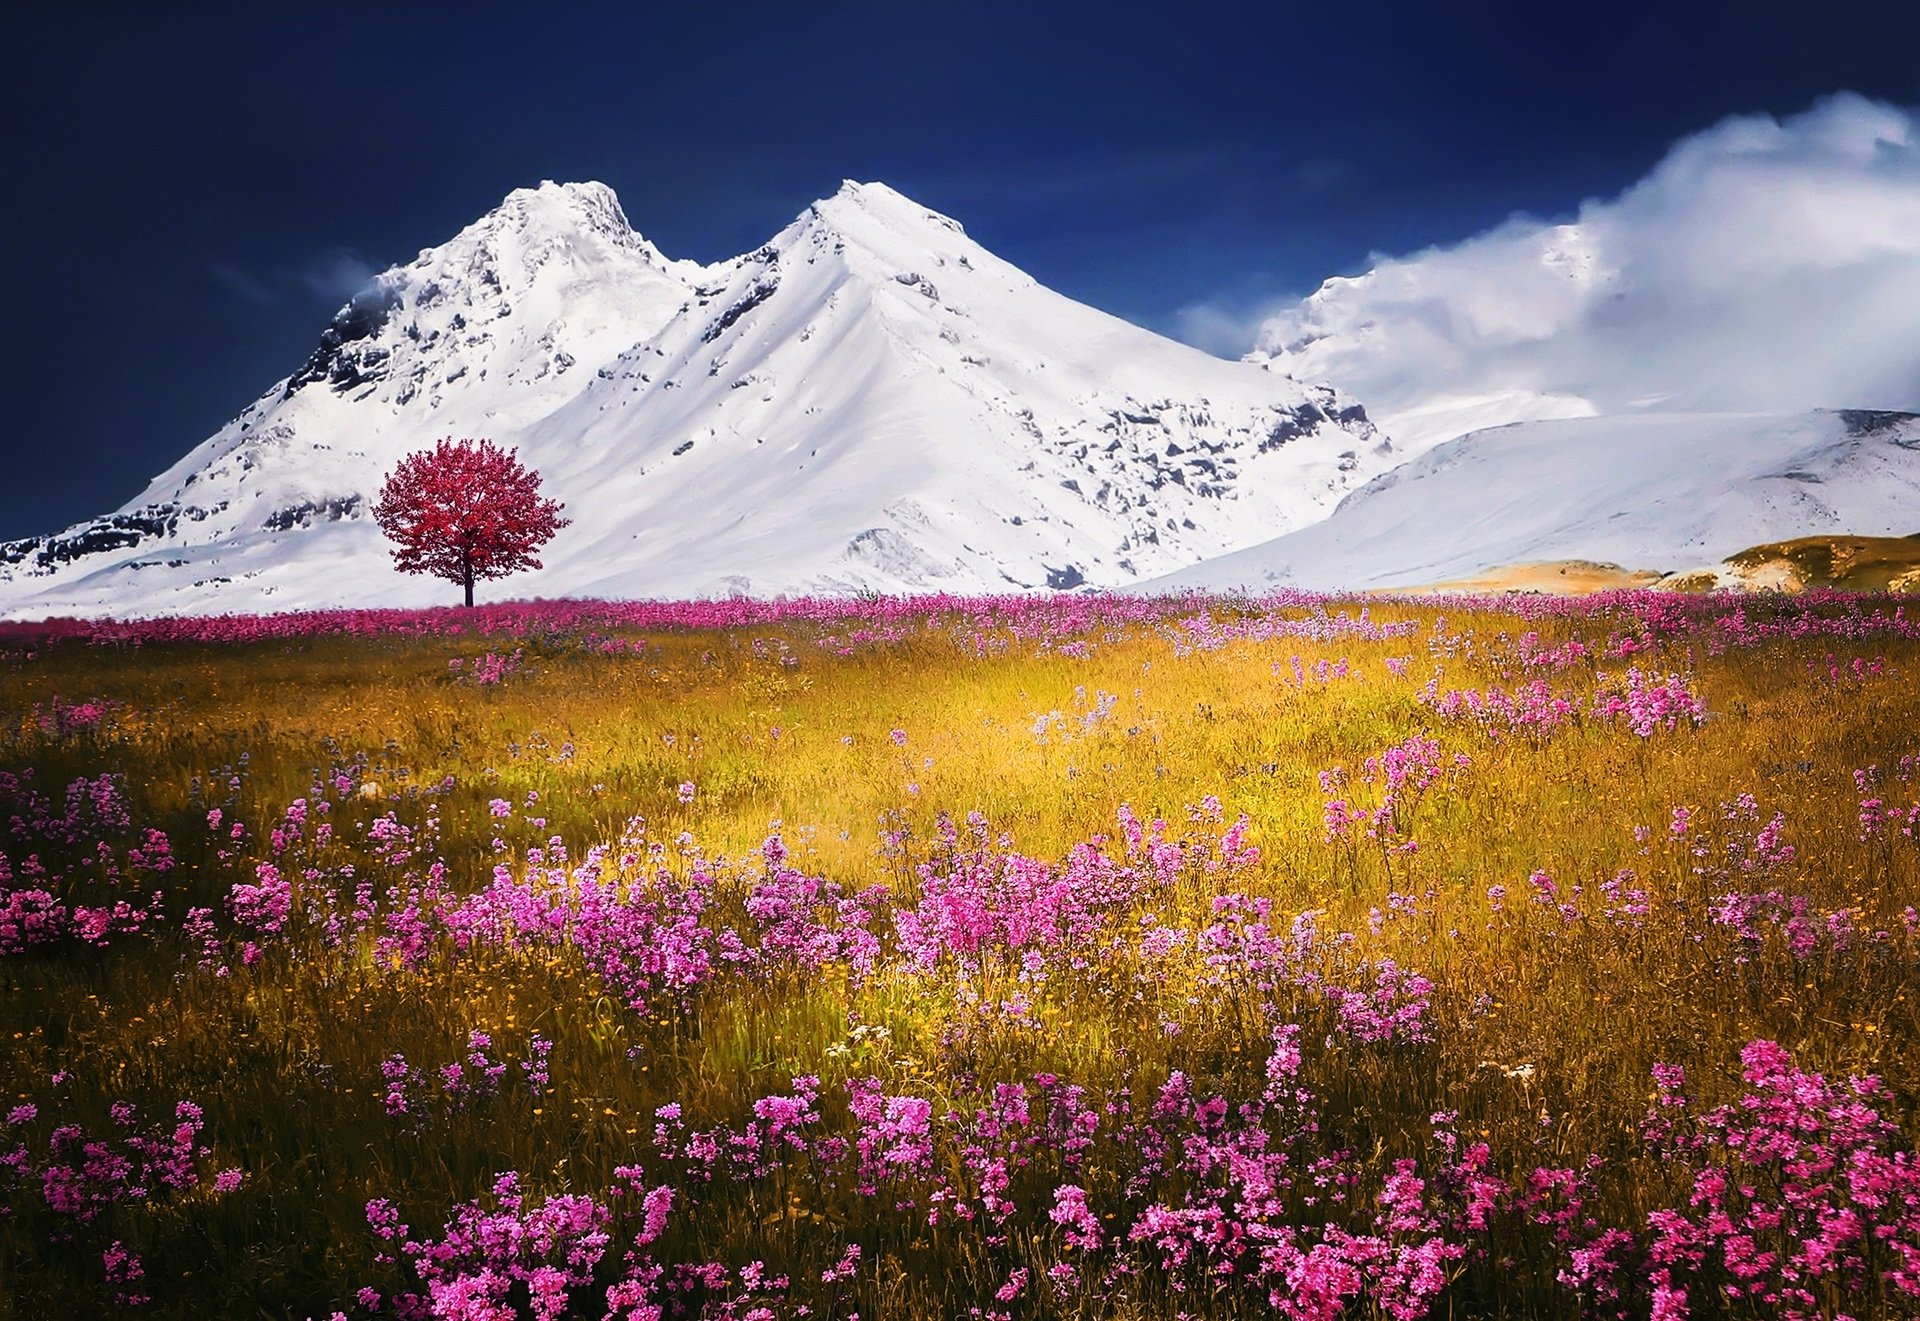 Earth - Mountain  Nature Snow Tree Lonely Tree Pink Flower Flower Meadow Wallpaper